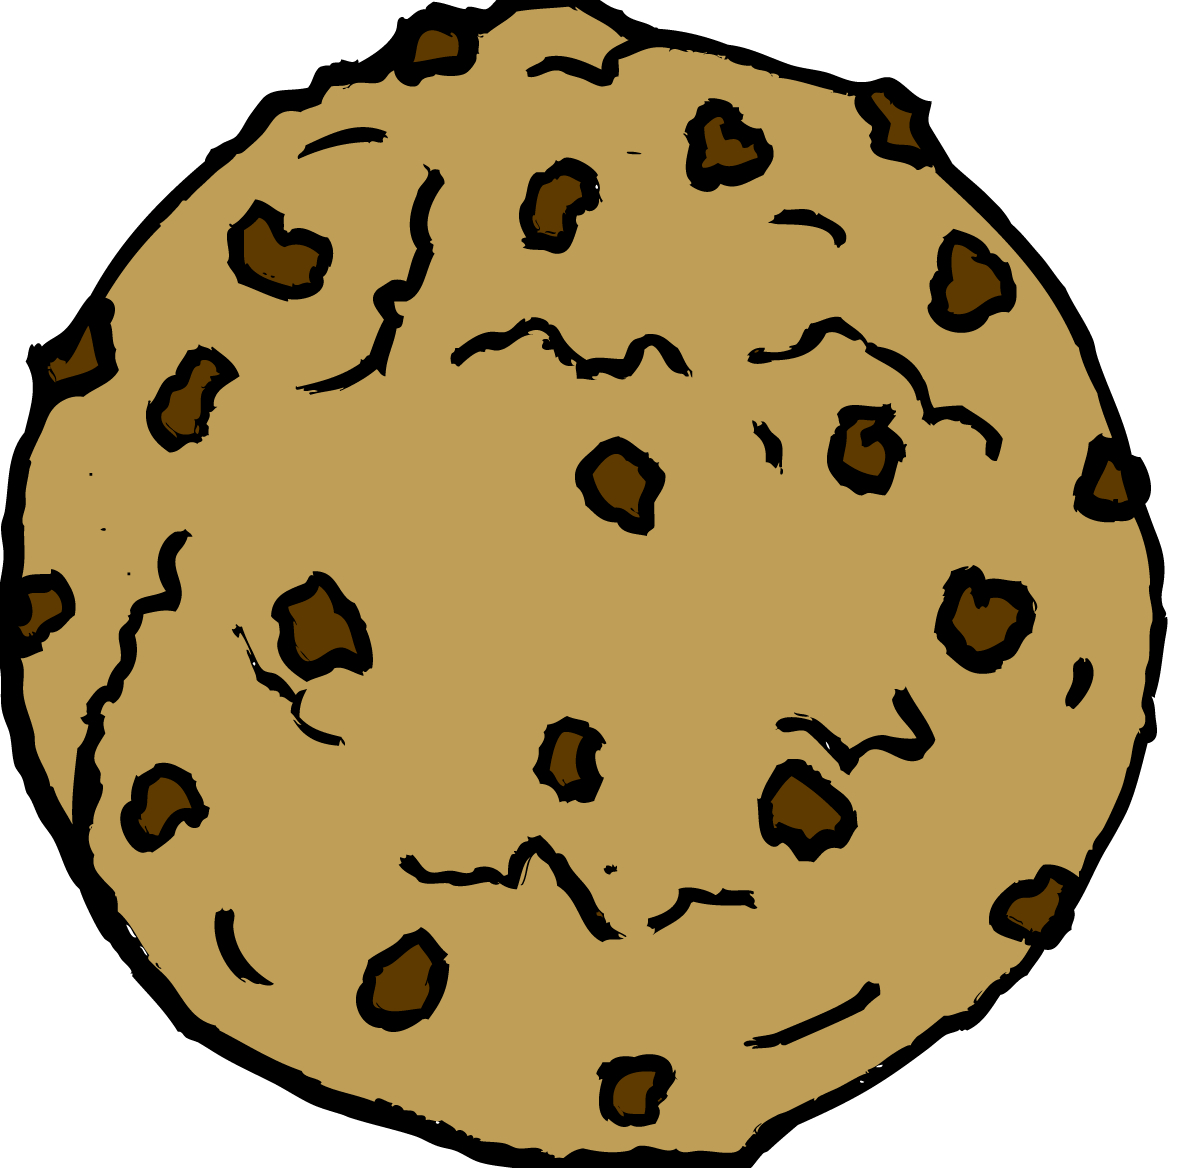 Cookie clipart. Chocolate chip cilpart nice